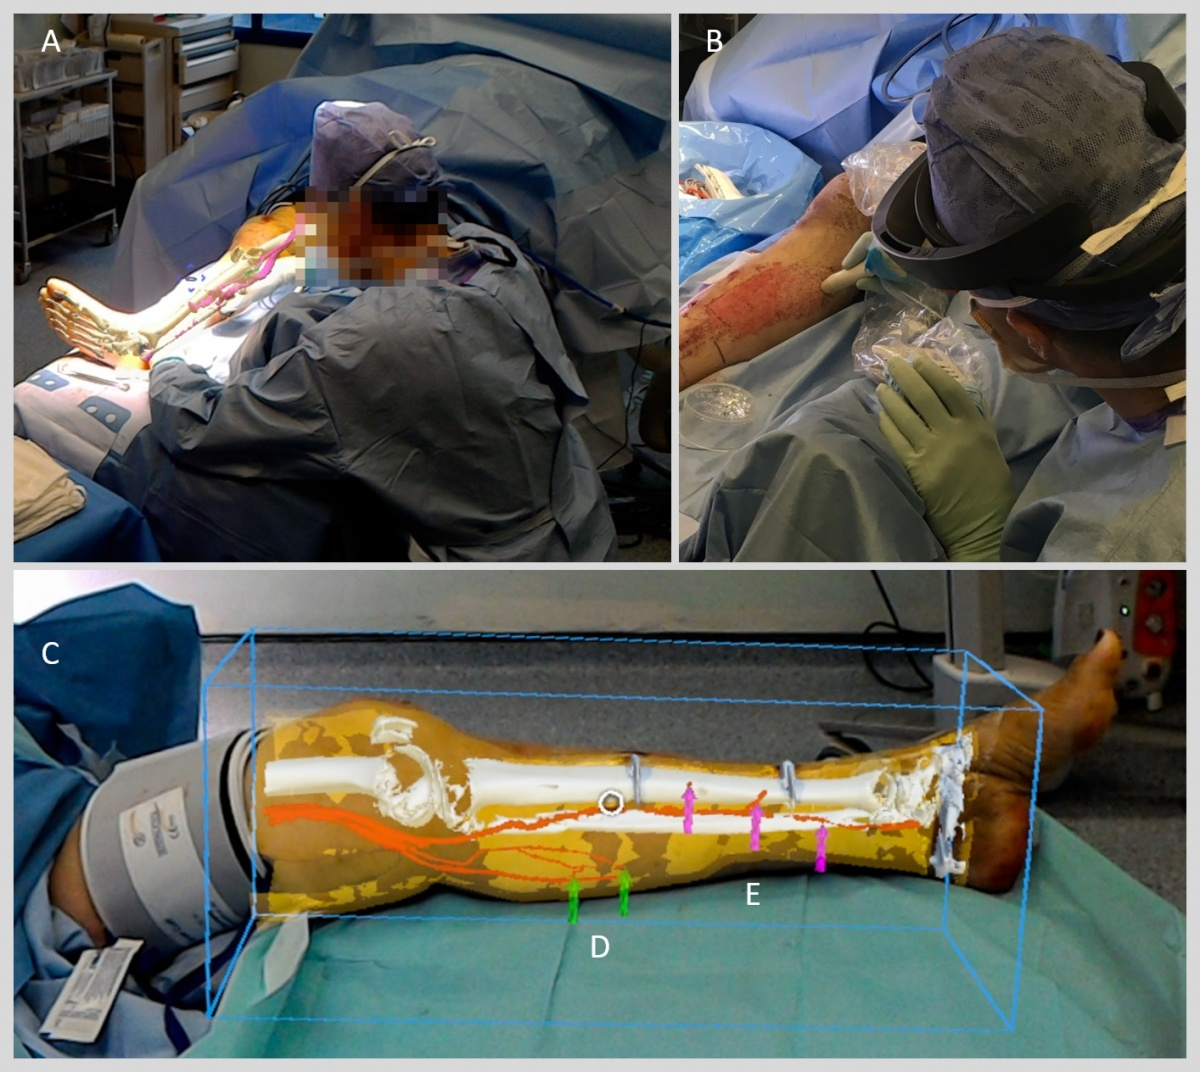 Augmented reality lets surgeons 'see' inside limbs